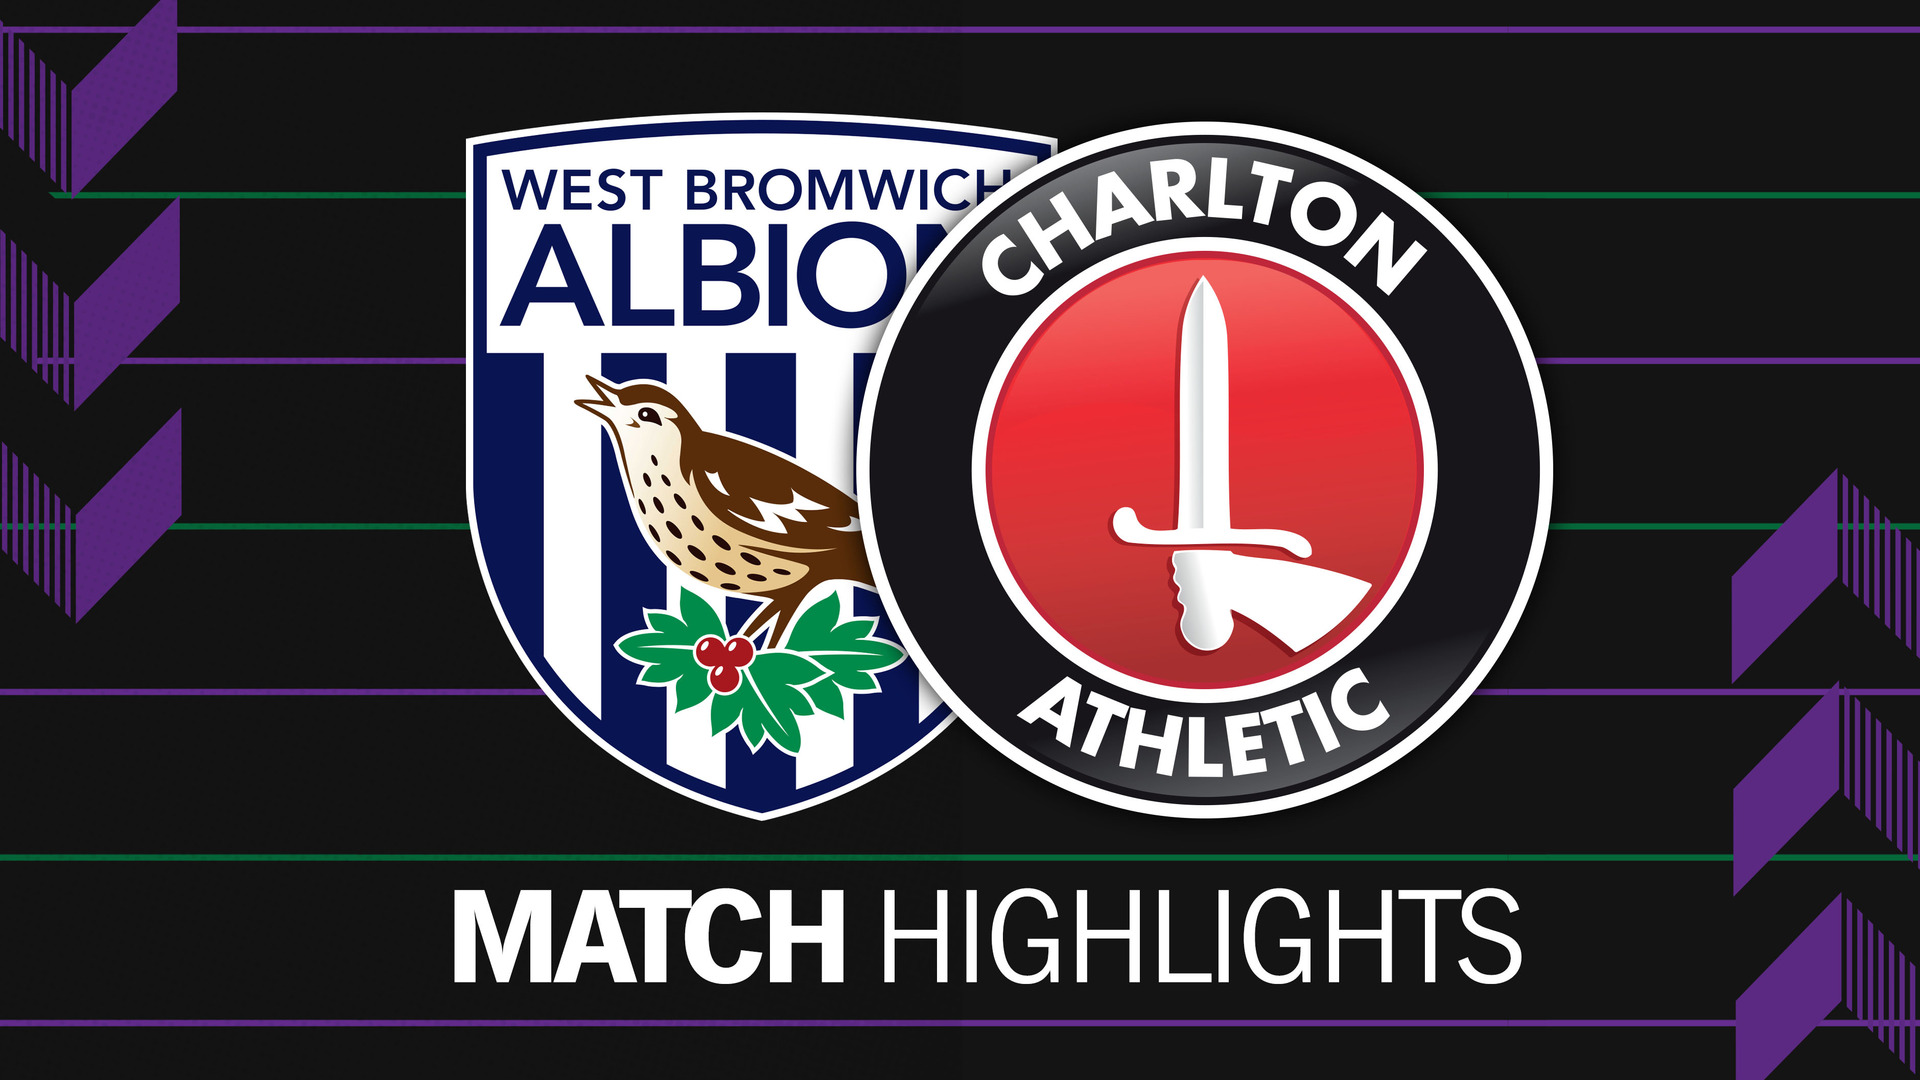 15 HIGHLIGHTS | West Bromwich Albion 2 Charlton 2 (October 2019)